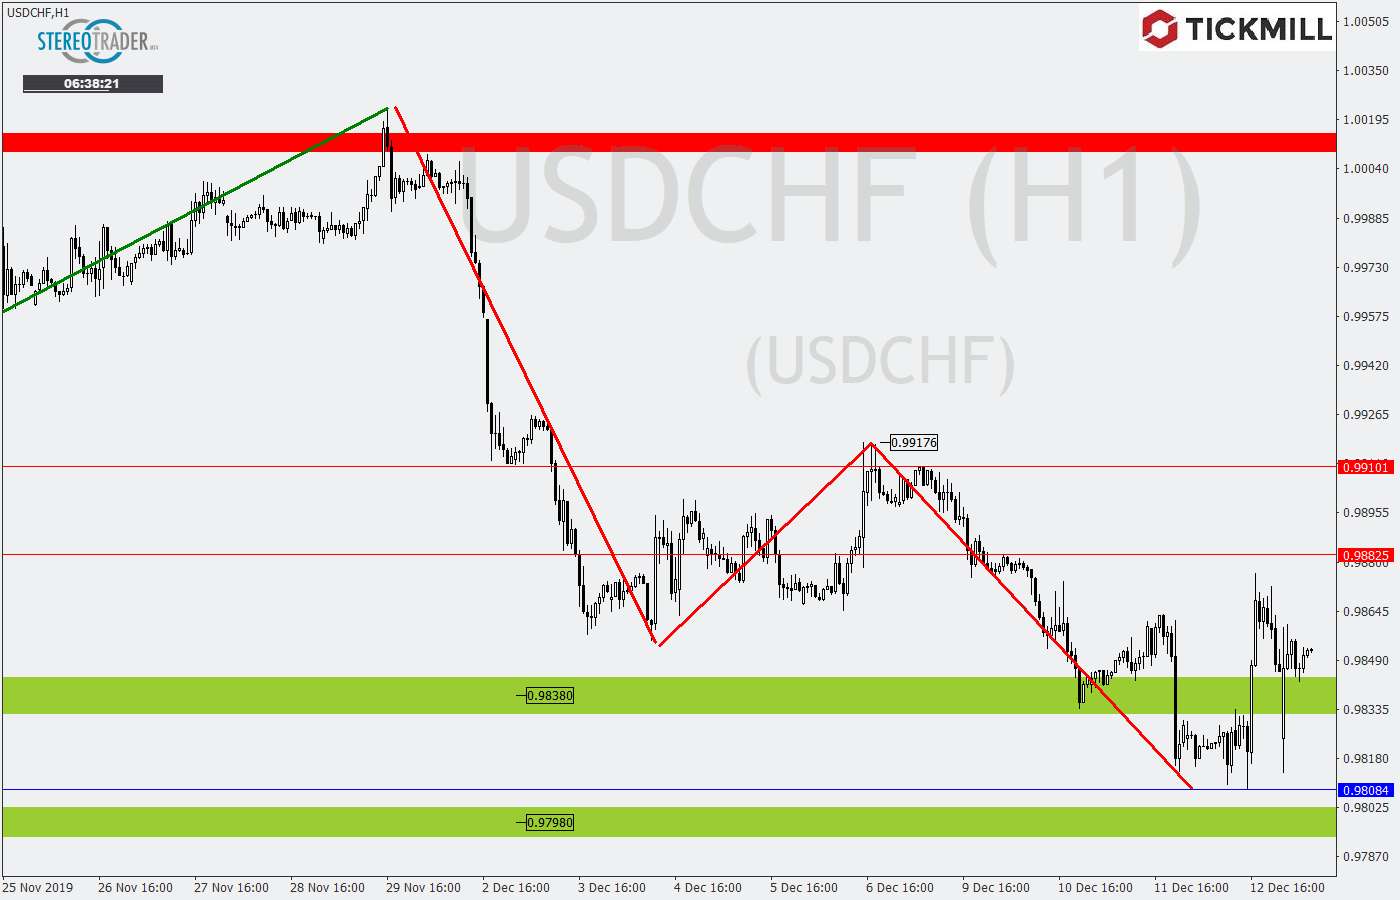 Tickmill-Analyse: USDCHF mit Erholungspotential